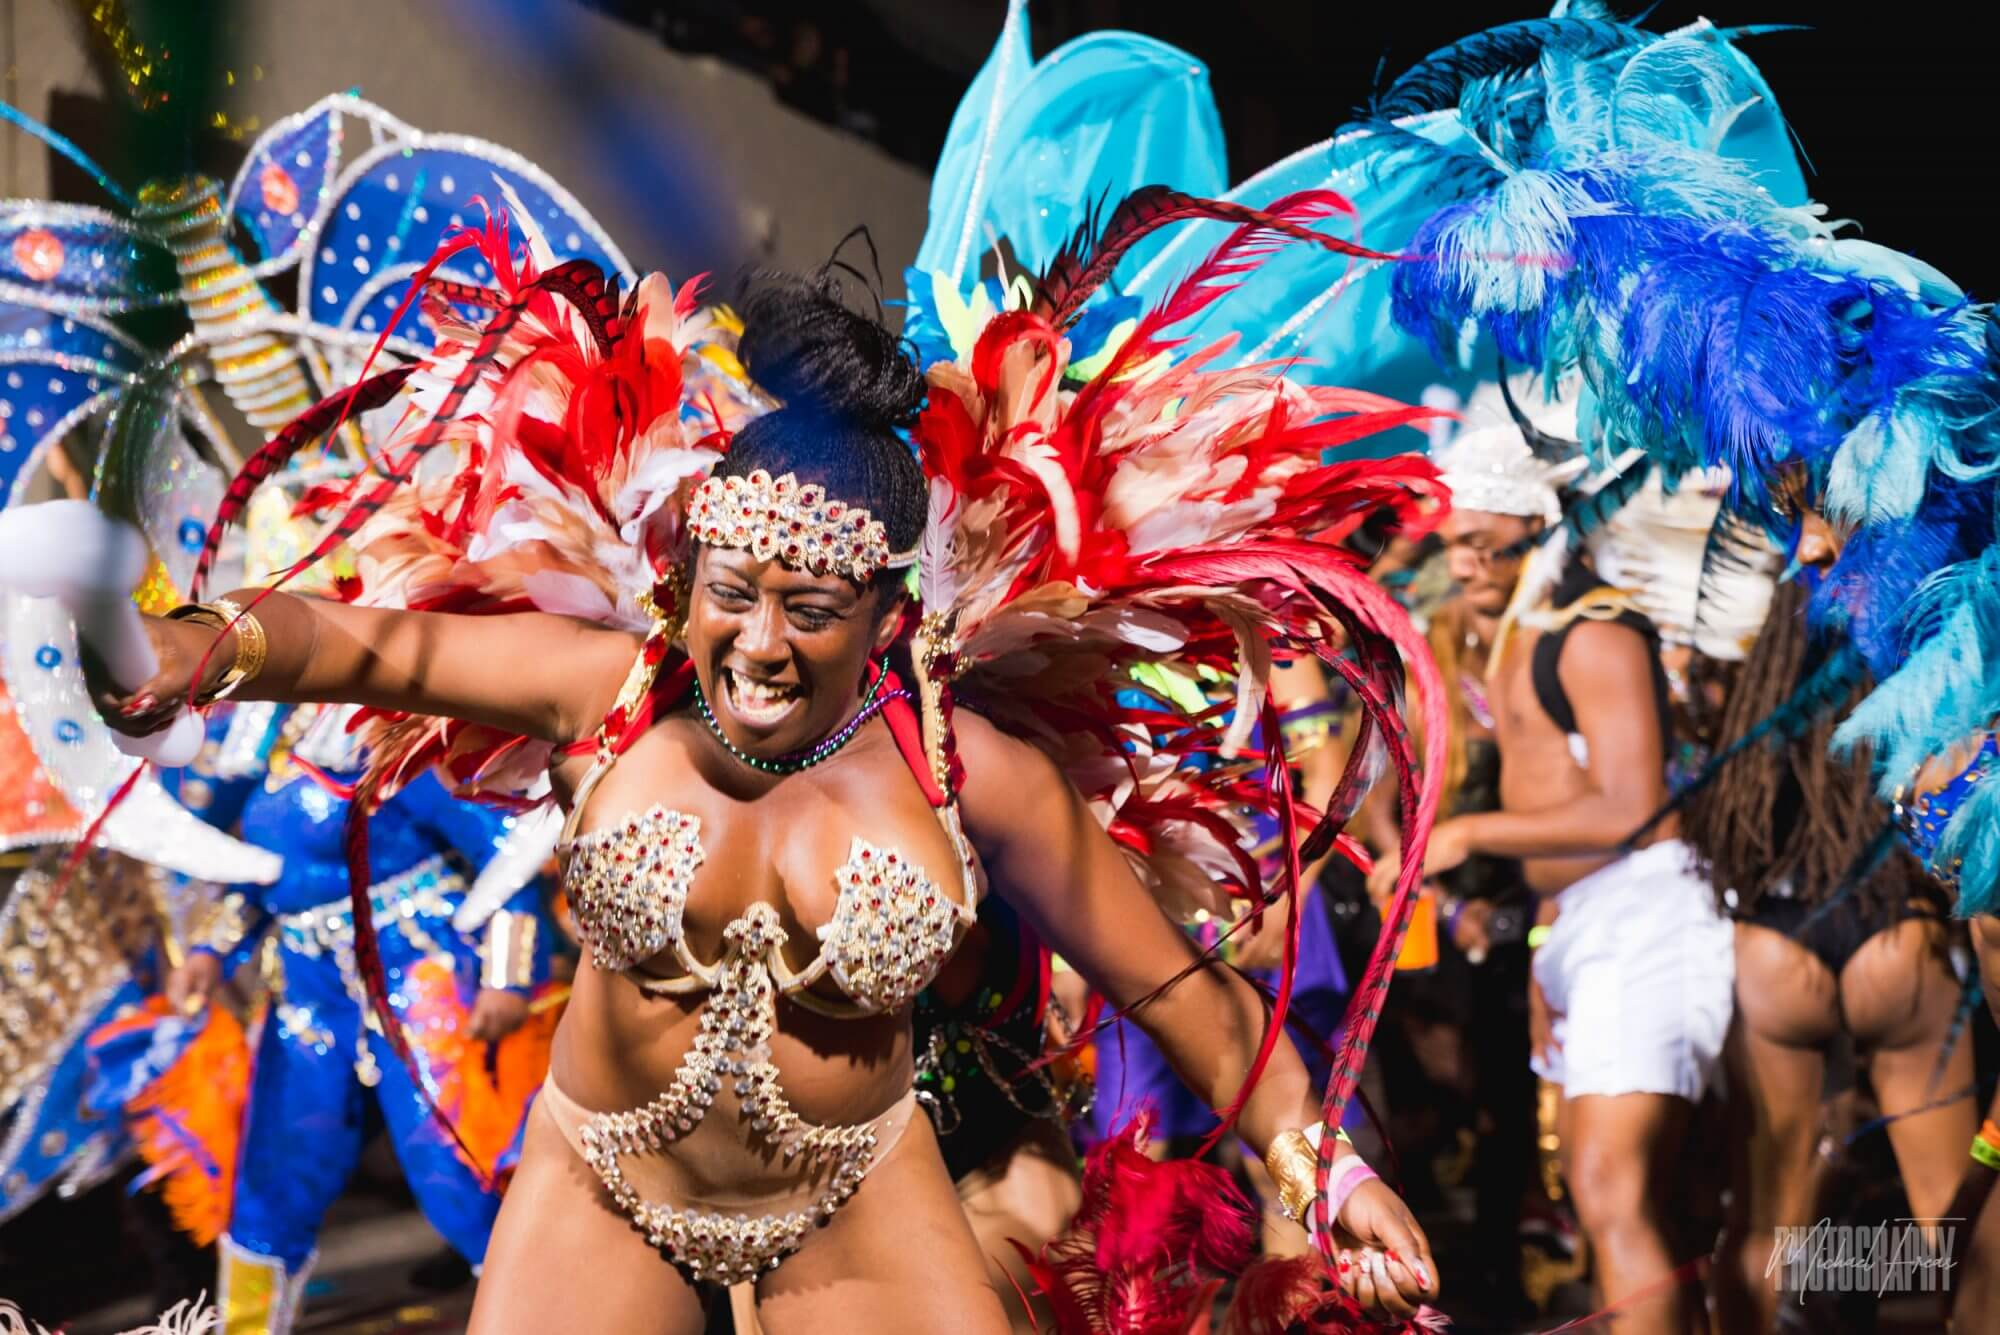 michael freas photography bud light parade 44 - Fantasy Fest 2017 - From the Lens of a Key West Photographer